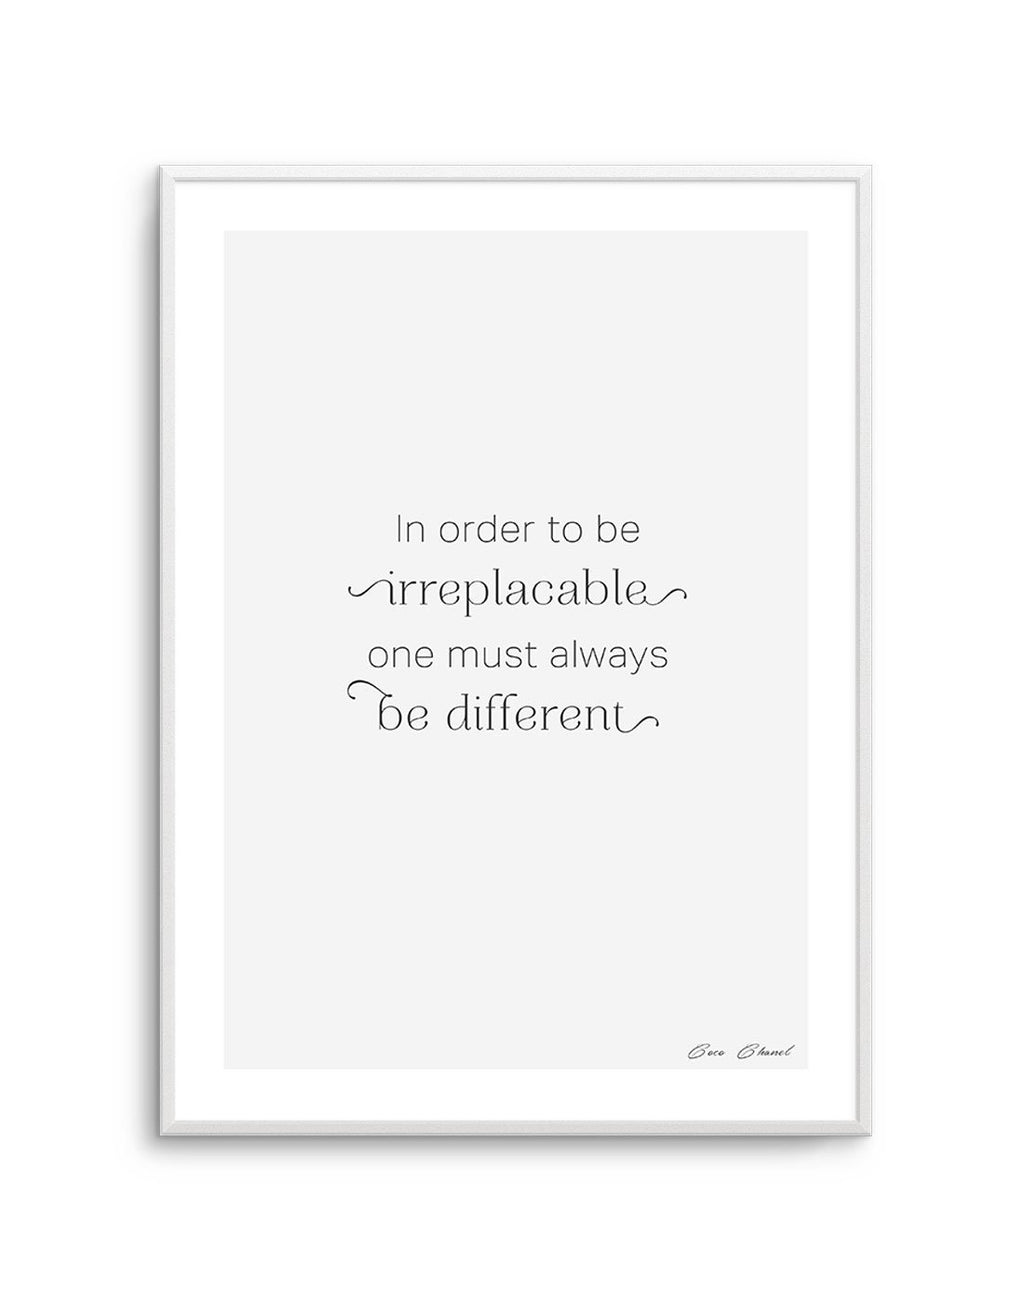 One Must Always Be Different - Olive et Oriel